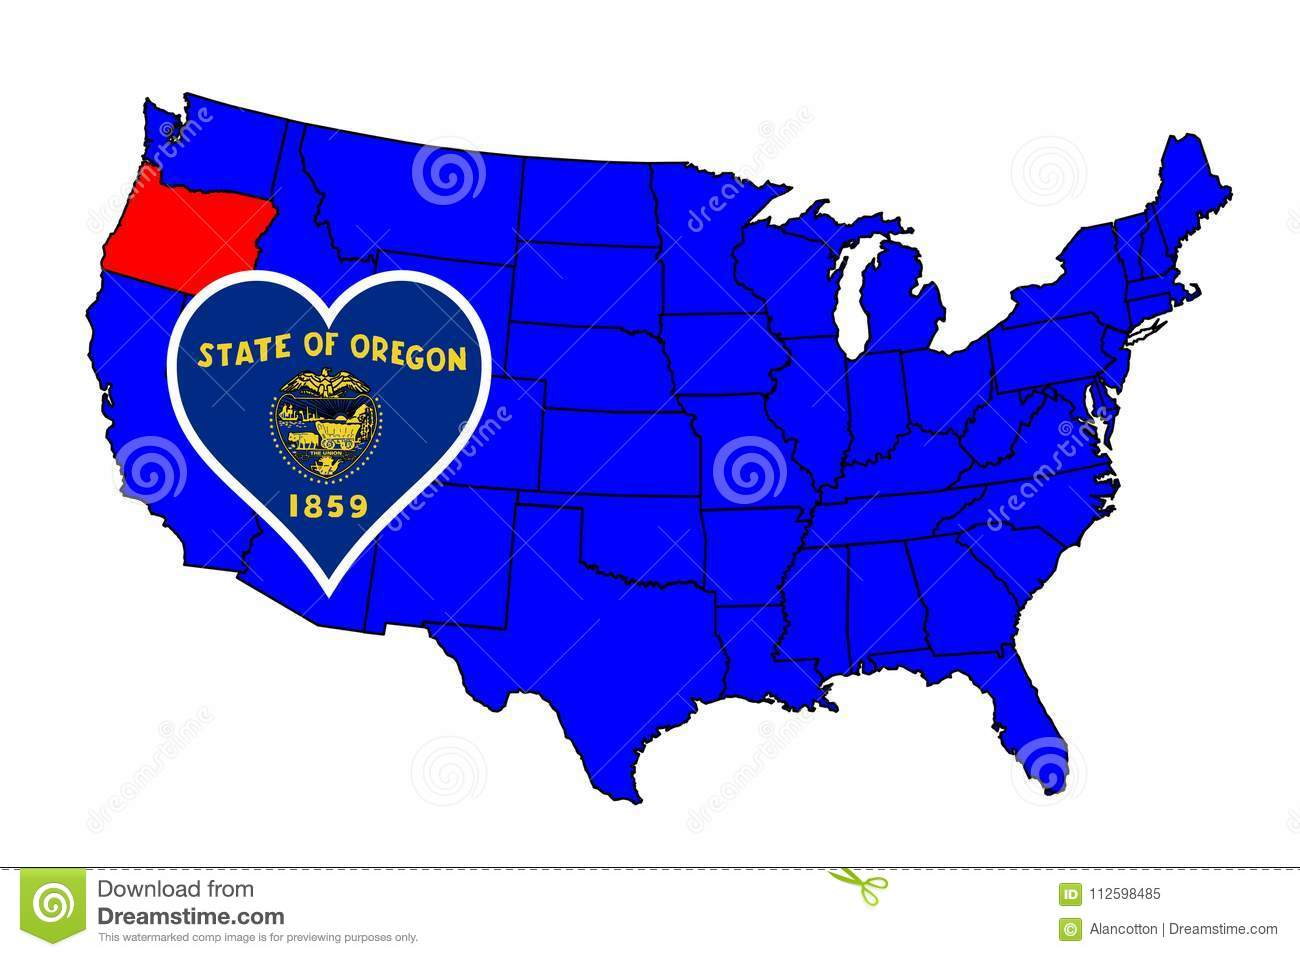 State of Oregon stock vector. Illustration of drawing ... on oregon counties map, oregon on alabama, portland river map, bend central oregon map, oregon department of forestry, oregon county map, the oregon map, oregon co map, oregon map online, oregon coast ranges physical, oregon railroads today map, oregon map with cities only, oregon tail map, oregon map google earth, portland oregon map, oregon on world map, oregon in us, oregon community college map, oregon capital map, portland county map,